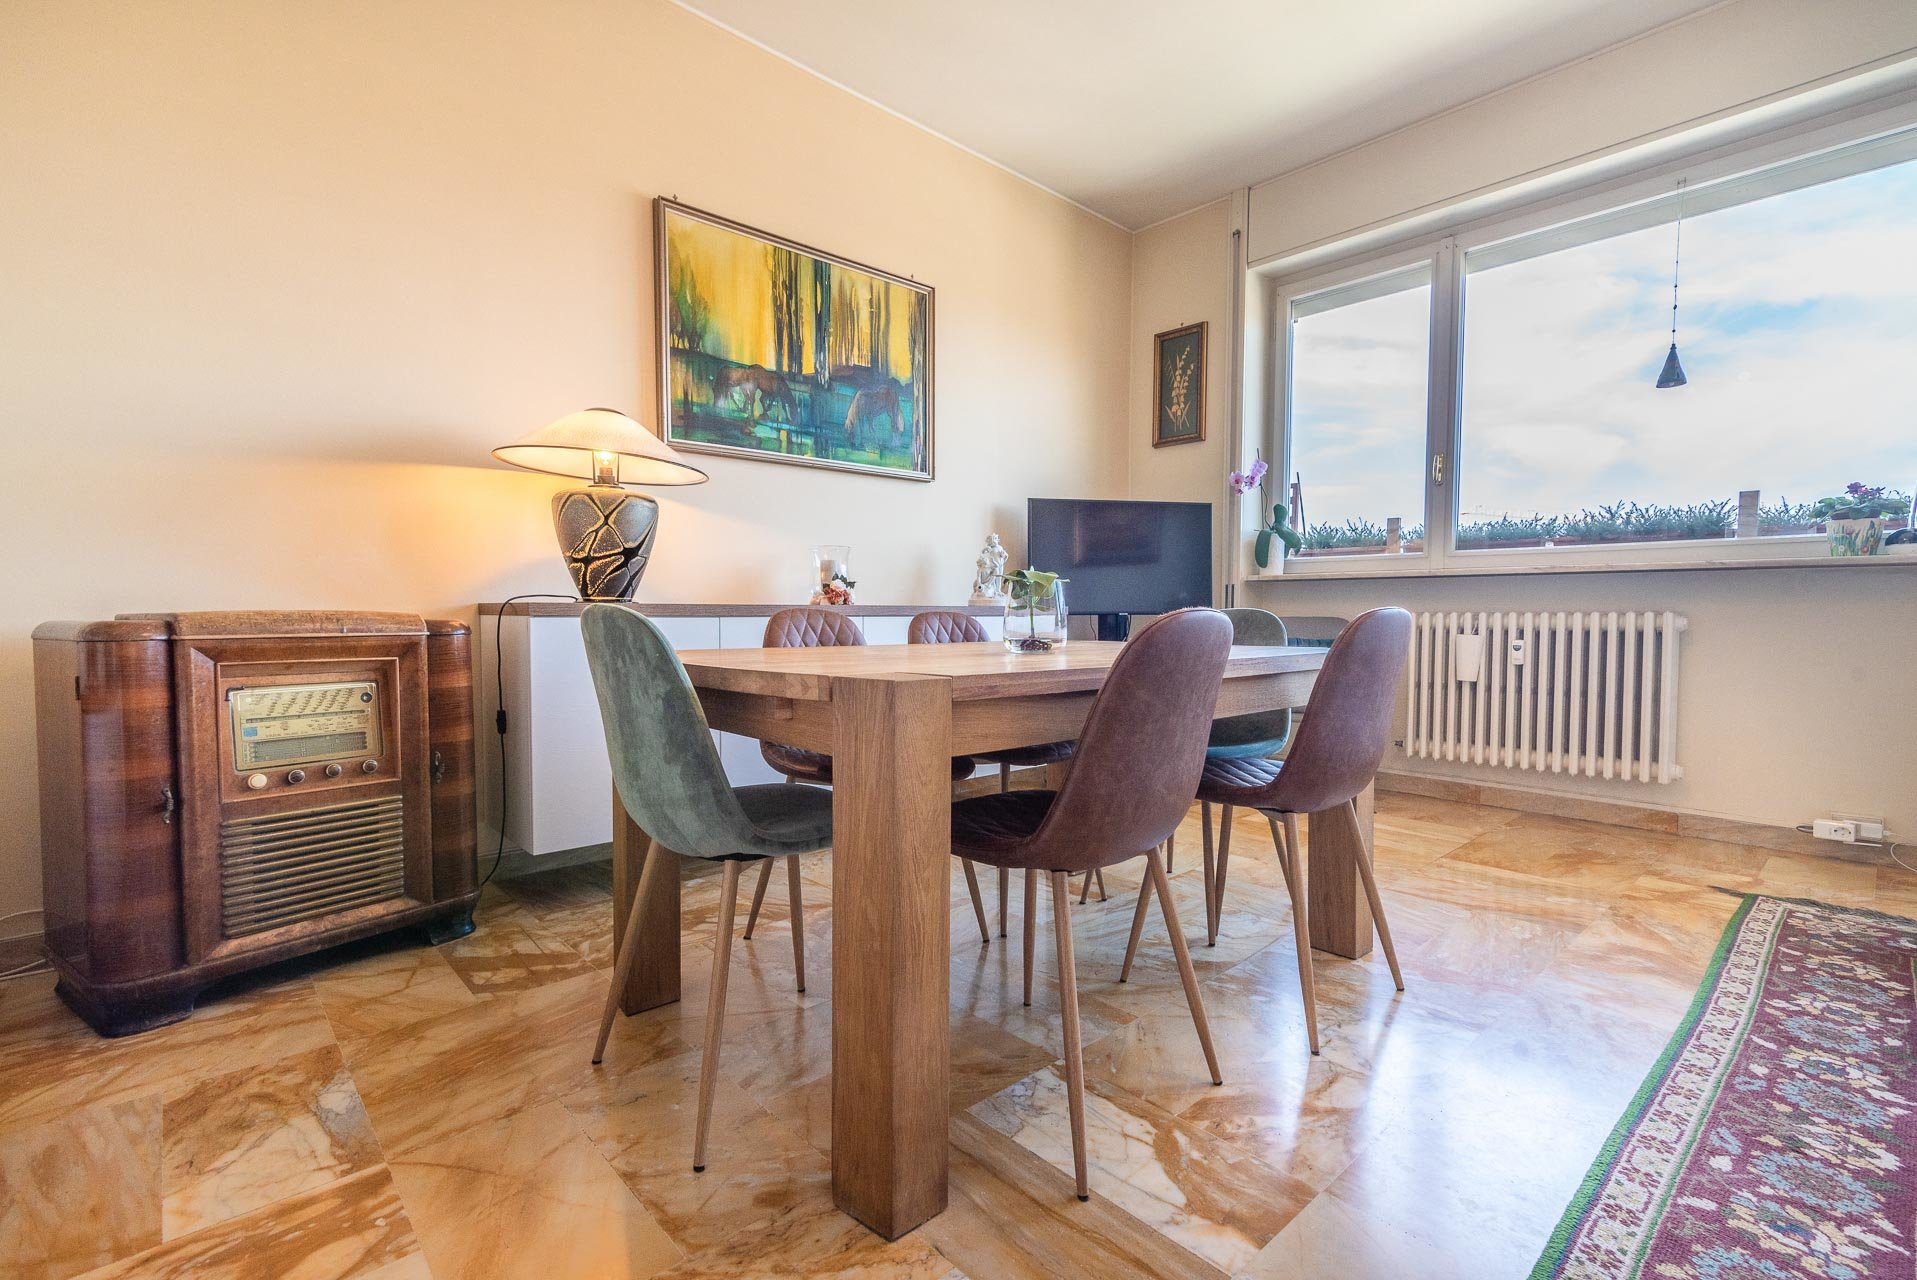 Flat for sale in the center of Stresa